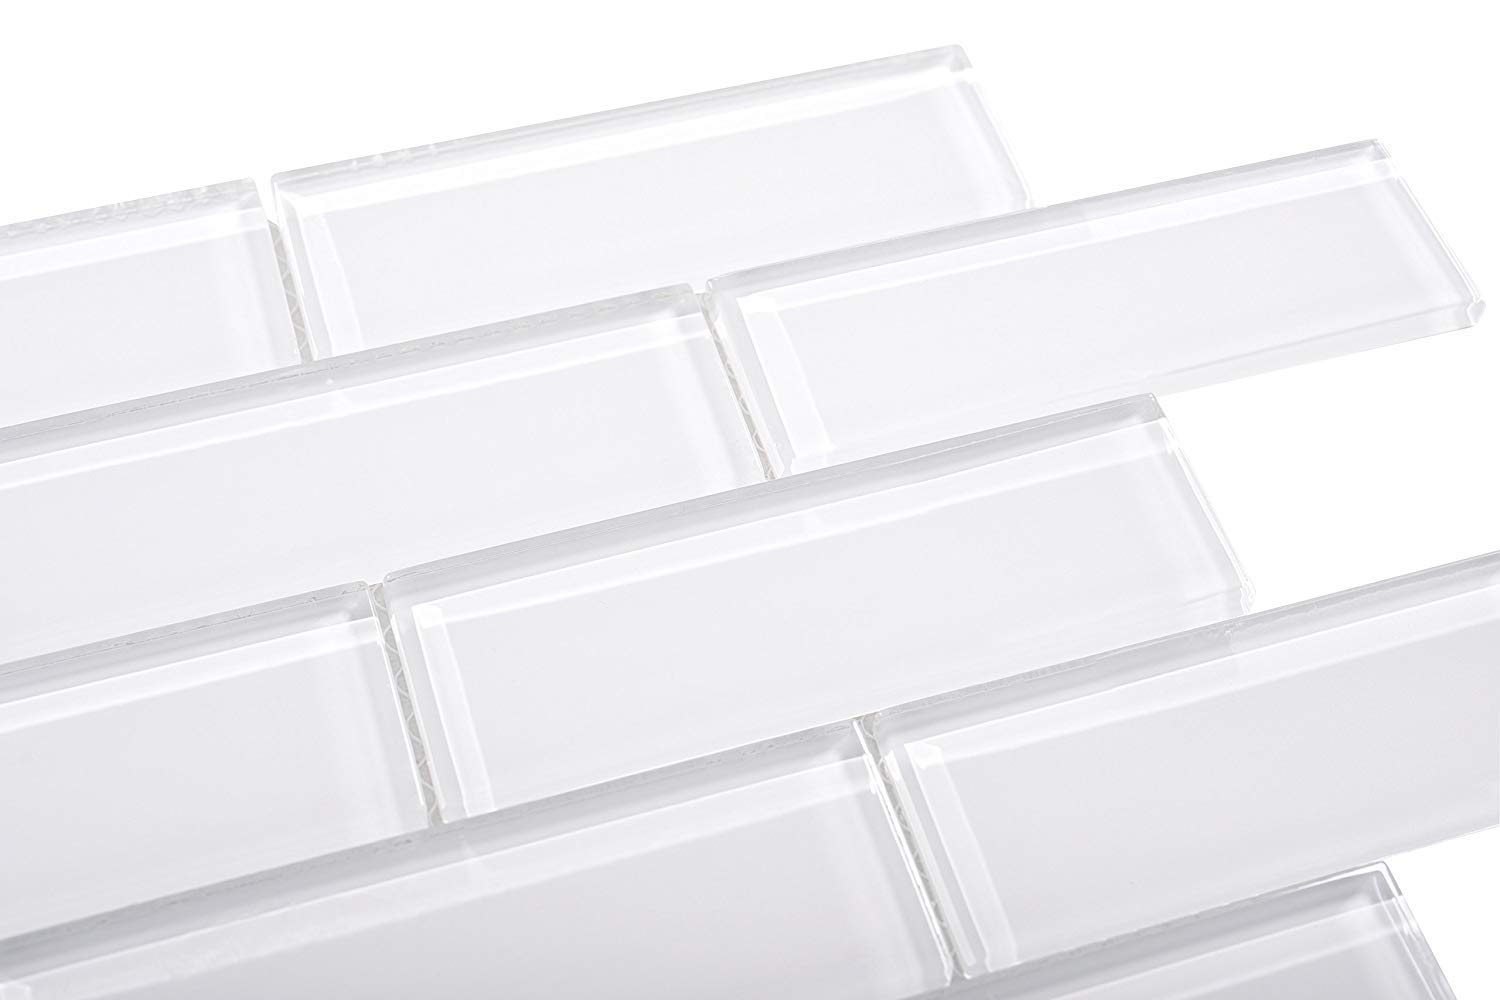 2'' x 6'' Subway Tyle White Glass, Backsplash, Mesh-Mounted Tile for Kitchen & Bathroom - 12 in x 12 in x 8mm (5 Square feet)